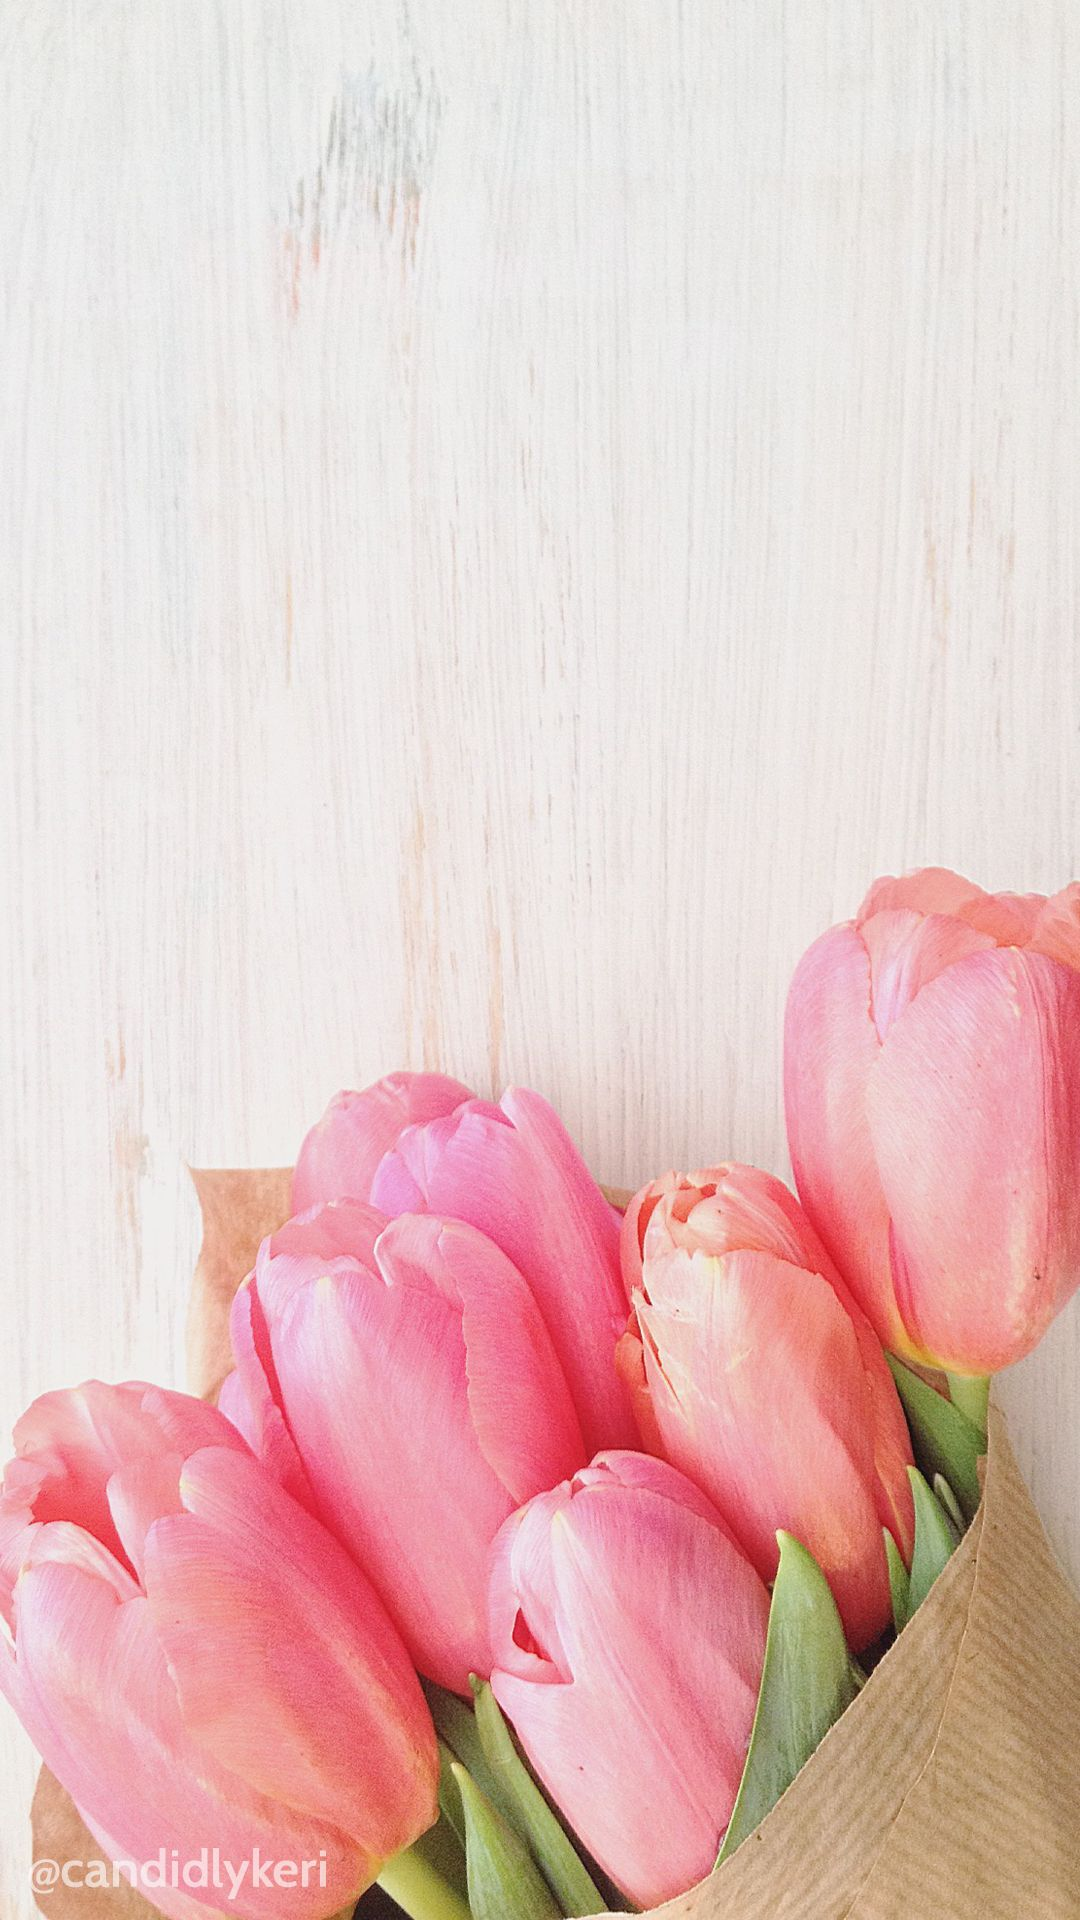 Cute Flower Tupils Pink With Wood Background Wallpaper You Can